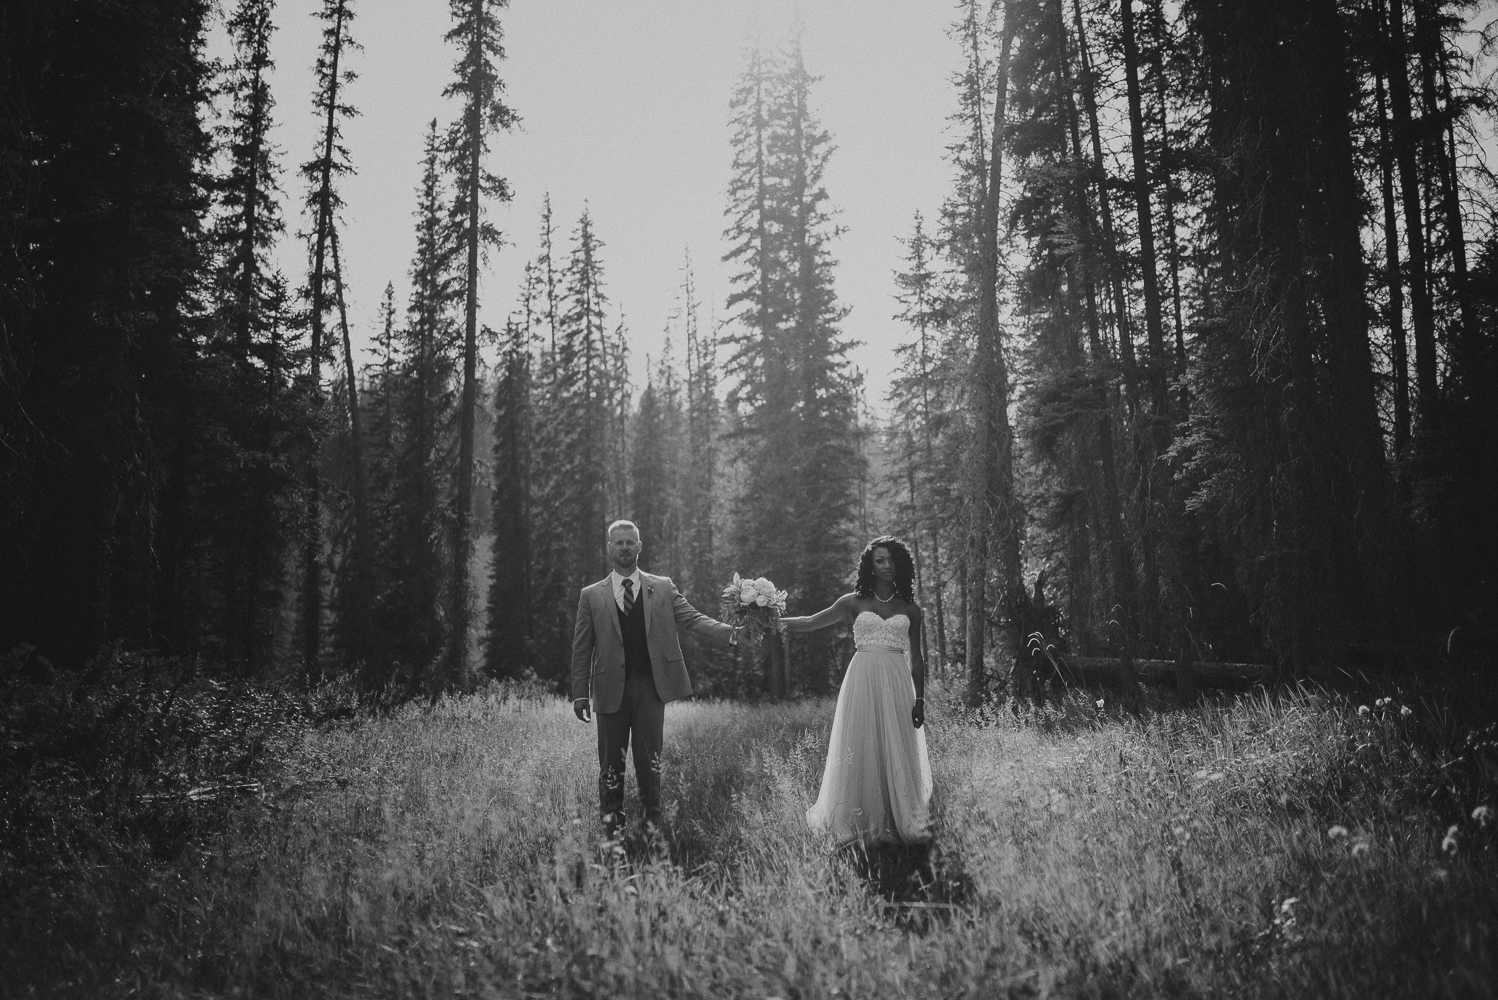 Kelowna-Wedding-Photographer-43.jpg